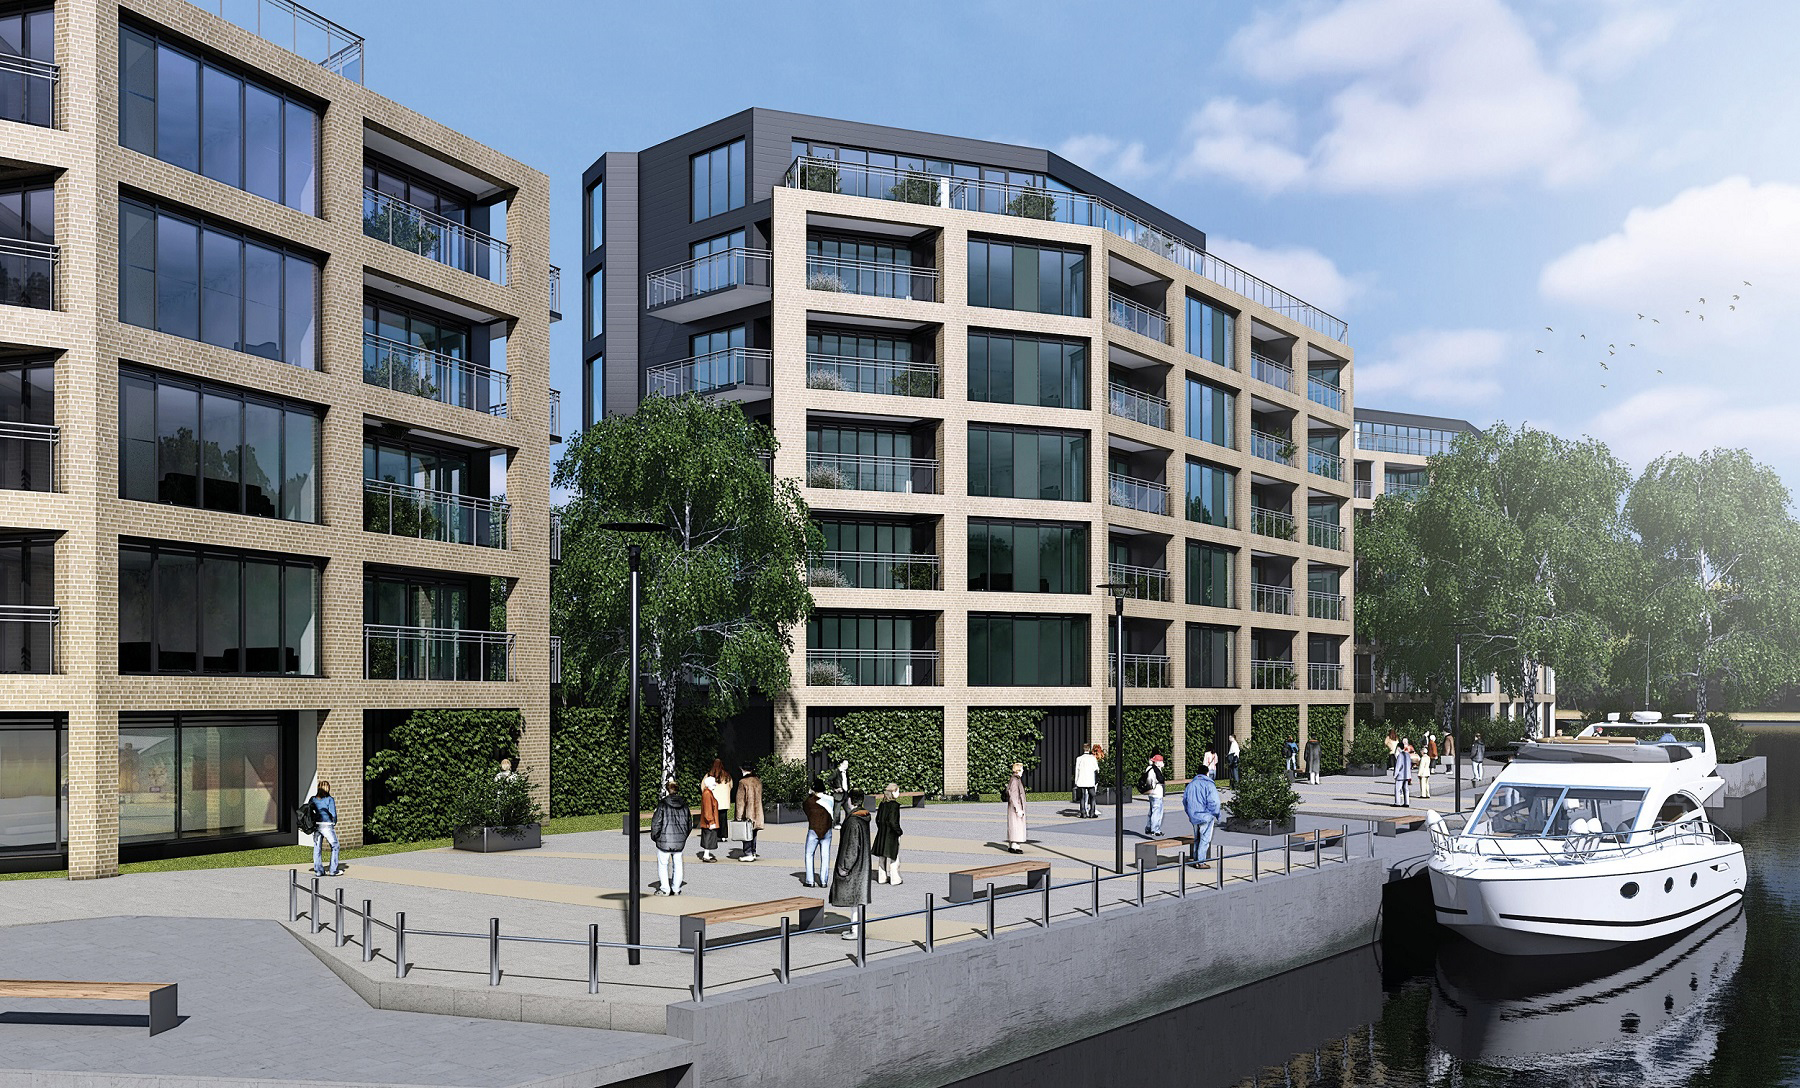 KMRE purchases site for £25m development on River Trent